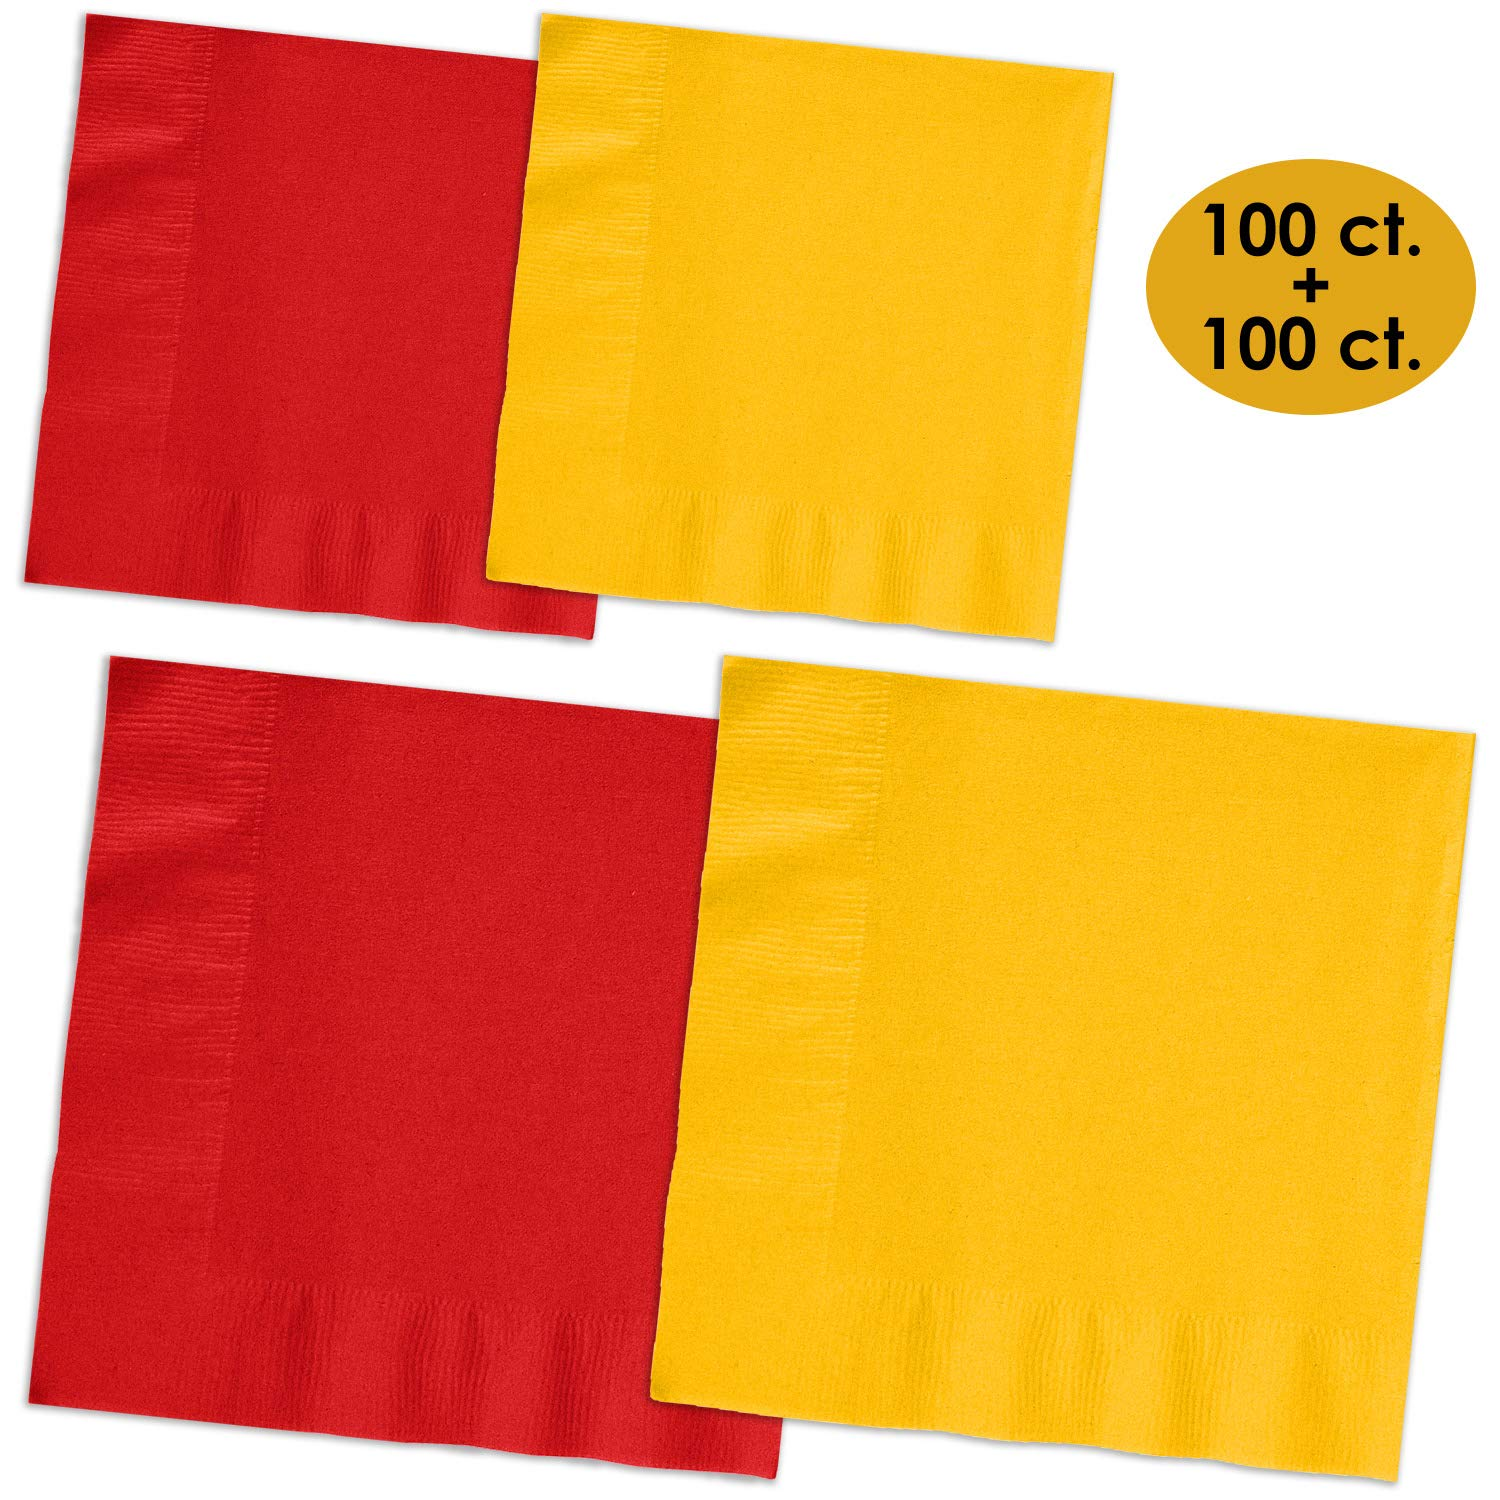 200 Napkins - Red & Sunshine Yellow - 100 Beverage Napkins + 100 Luncheon Napkins, 2-Ply, 50 Per Color Per Type